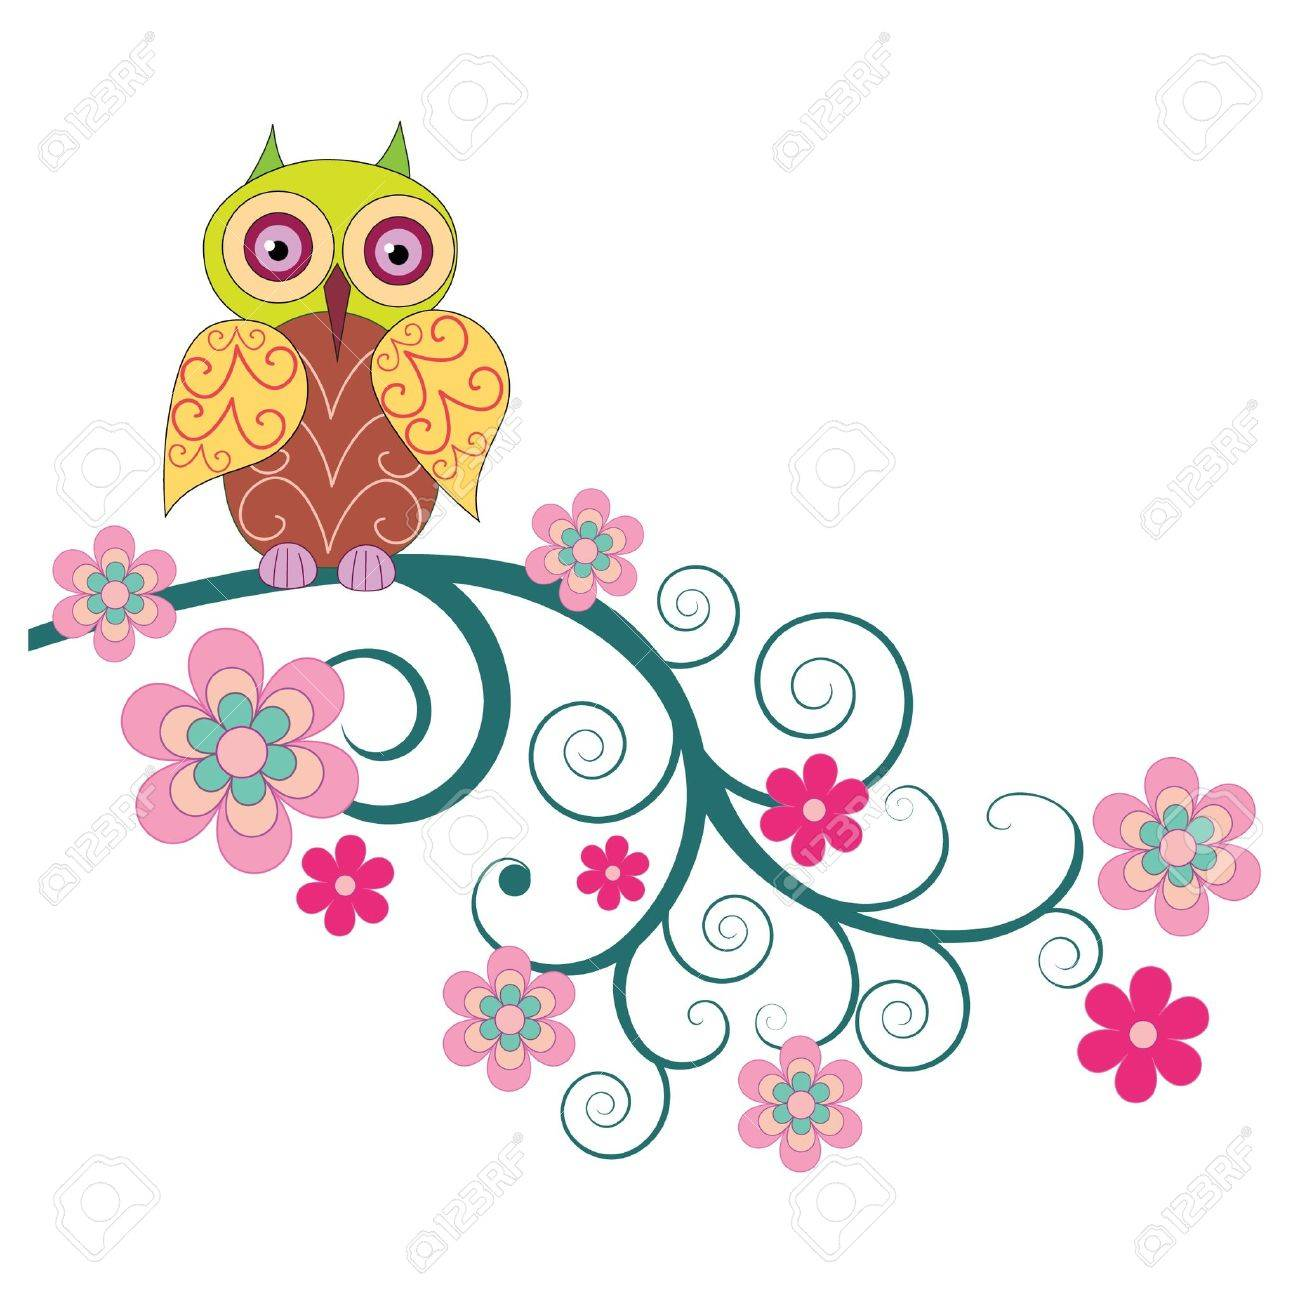 A cute owl sitting on the branch of flowers vector illustration Stock Vector - 16984340